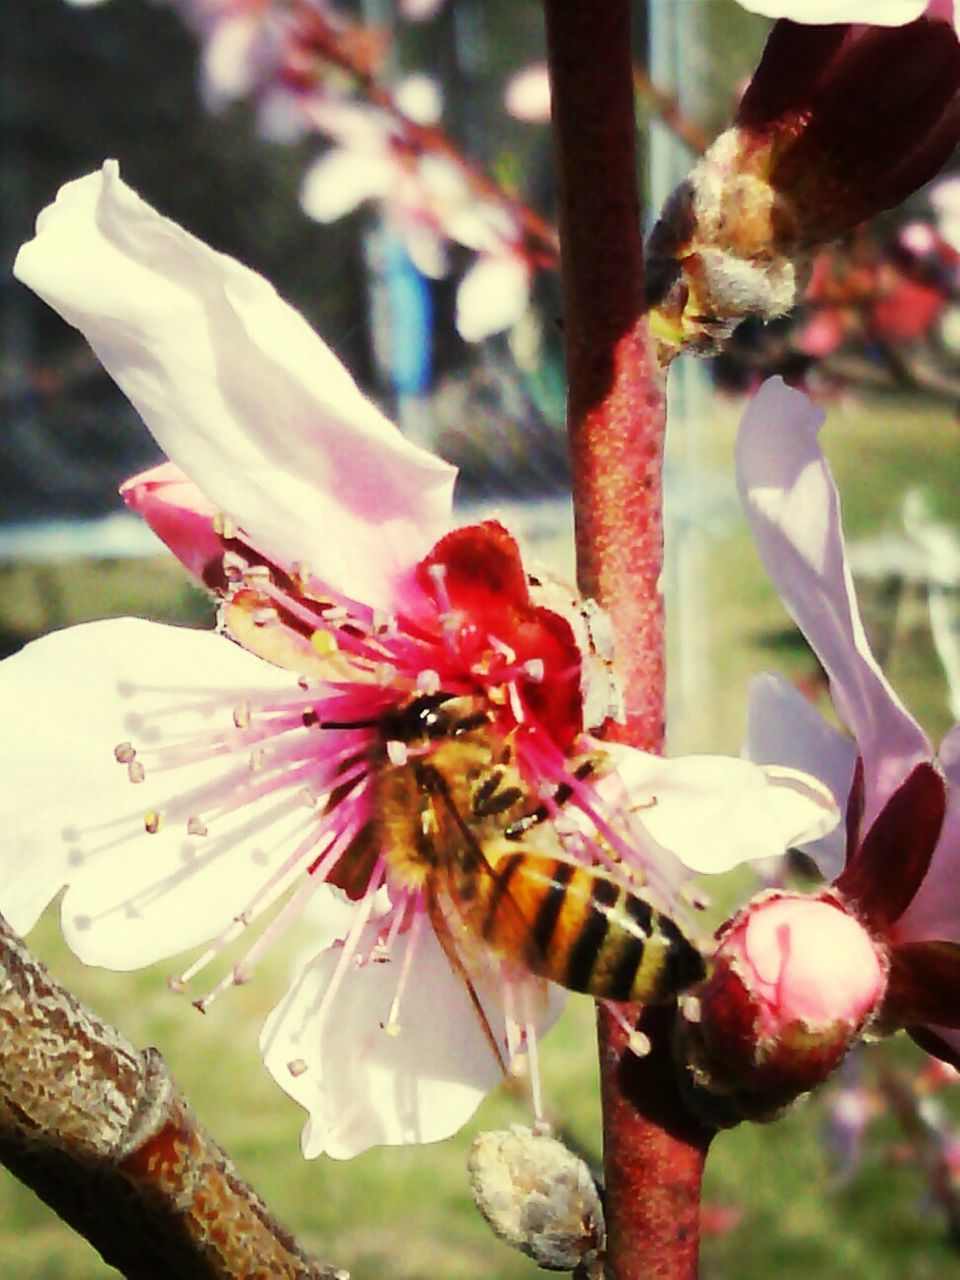 flower, fragility, petal, growth, beauty in nature, nature, freshness, flower head, close-up, blossom, no people, stamen, plant, insect, pollen, day, focus on foreground, outdoors, springtime, blooming, one animal, animals in the wild, bee, animal themes, pollination